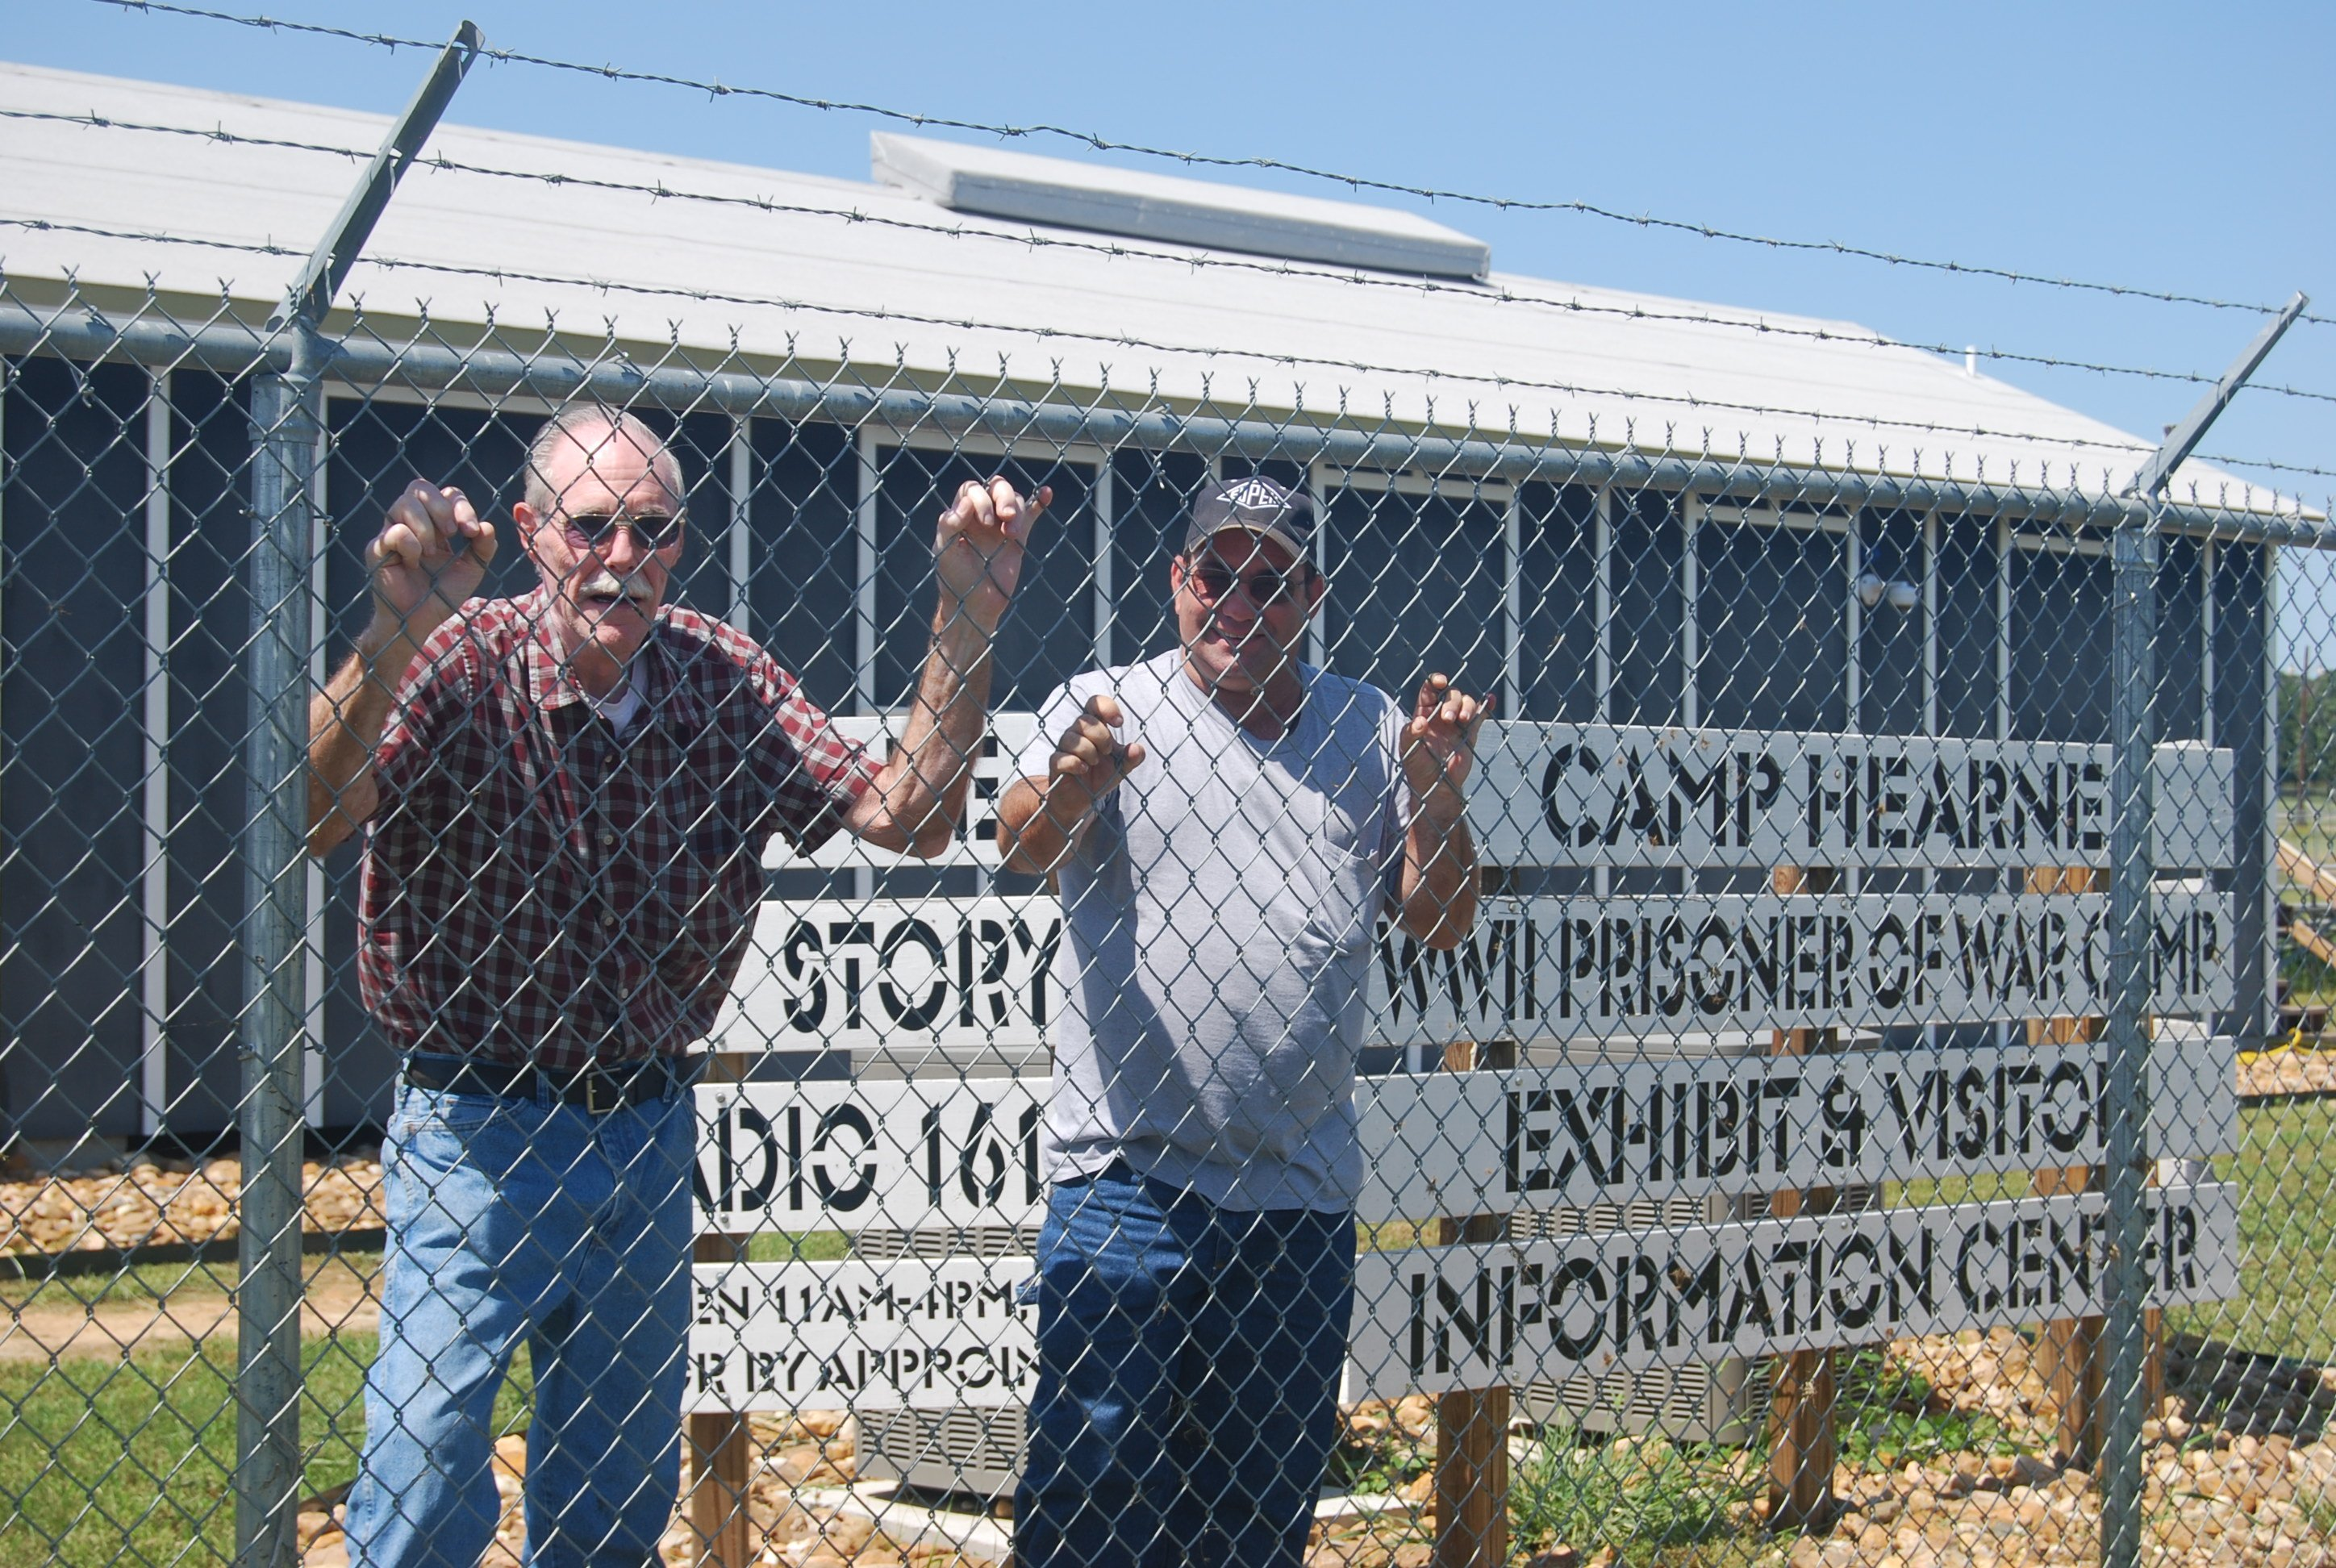 camp_hearne_2012_jail_birds